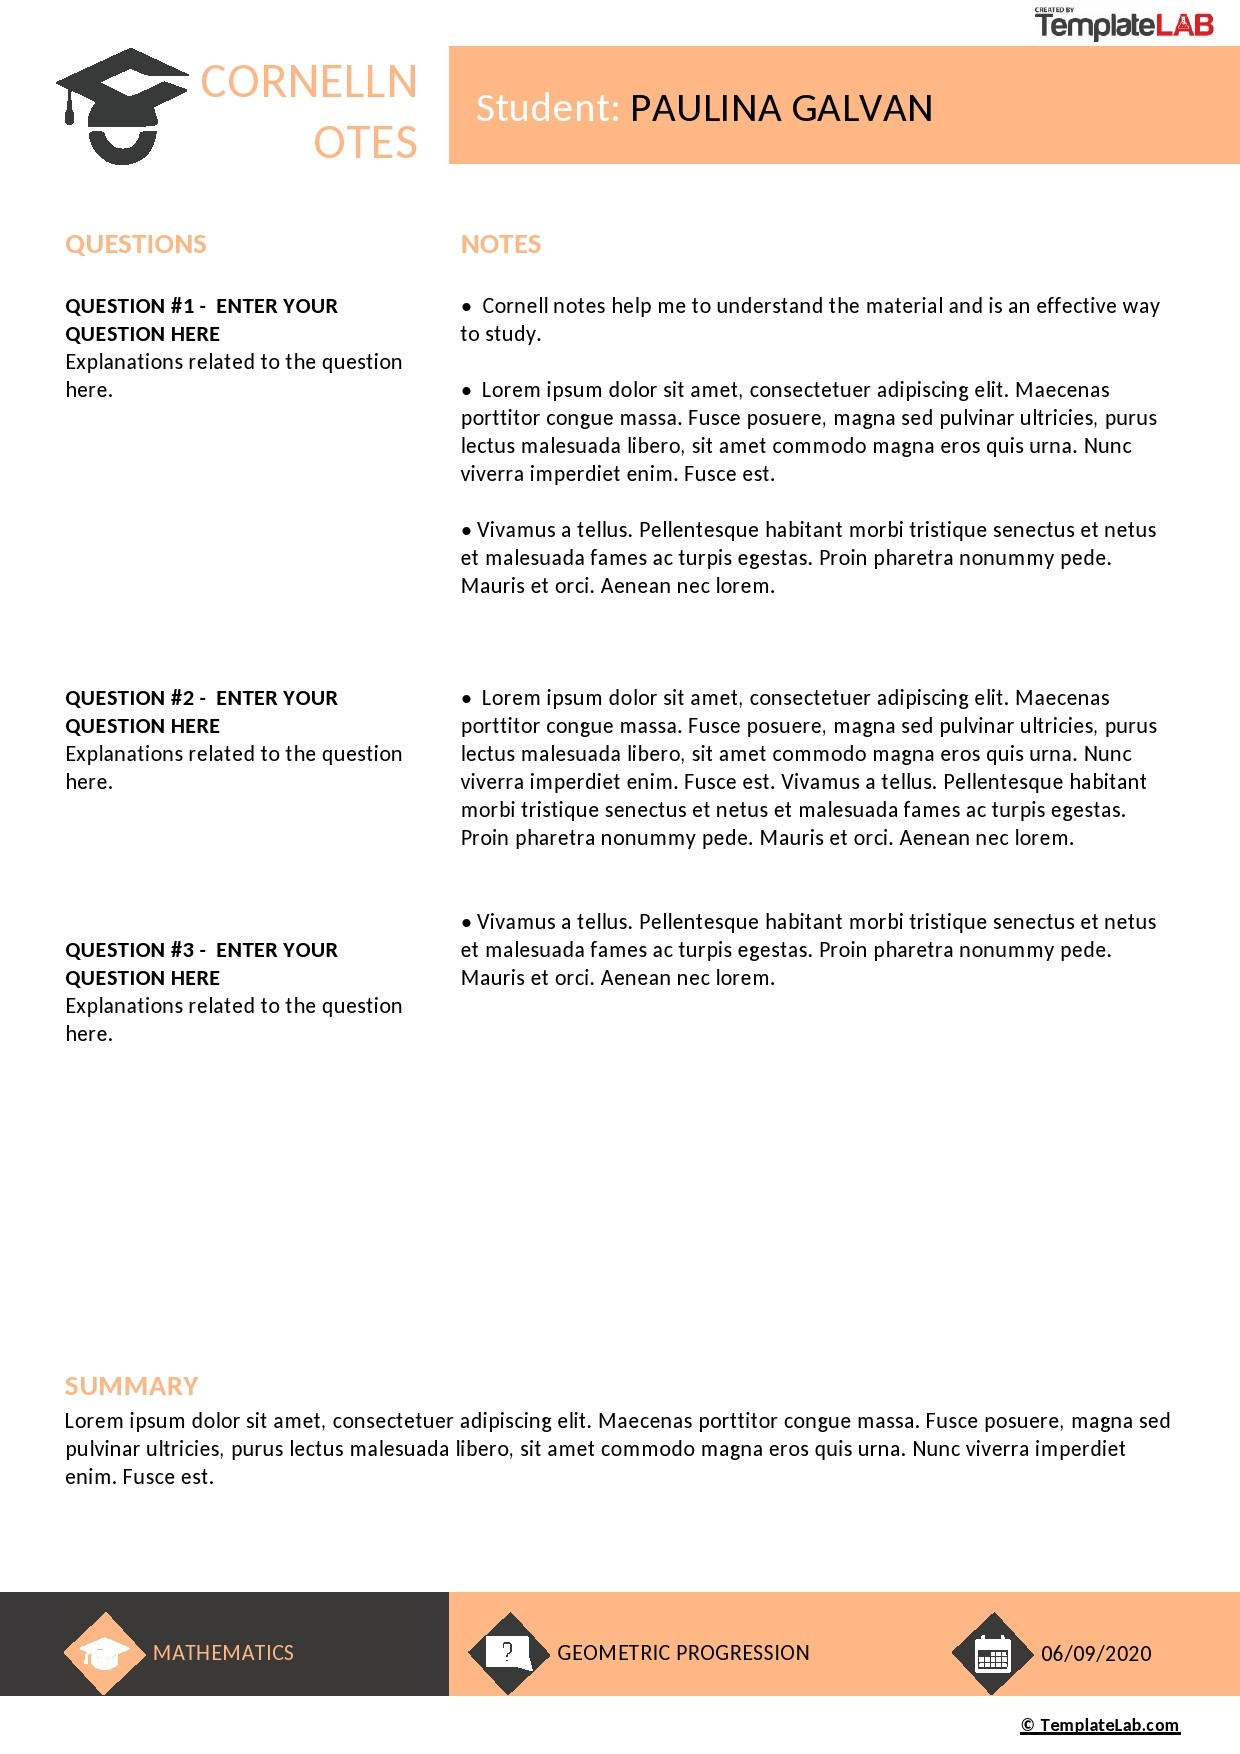 Free Cornell Notes Template 02 - TemplateLab.com